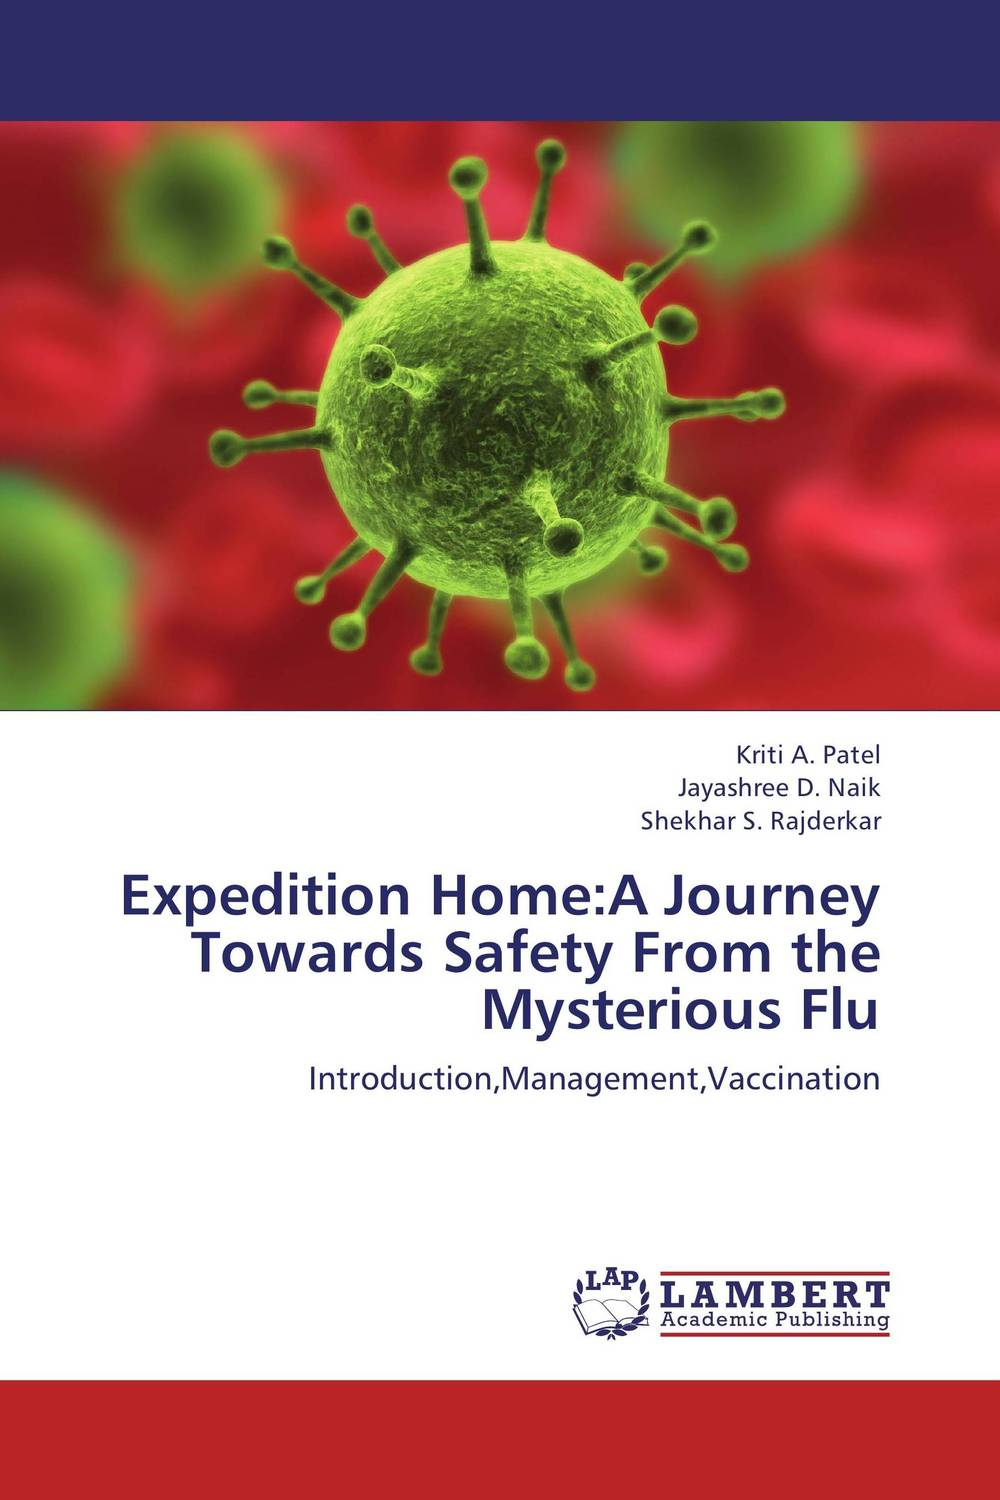 Expedition Home:A Journey Towards Safety From the Mysterious Flu verne j journey to the centre of the earth